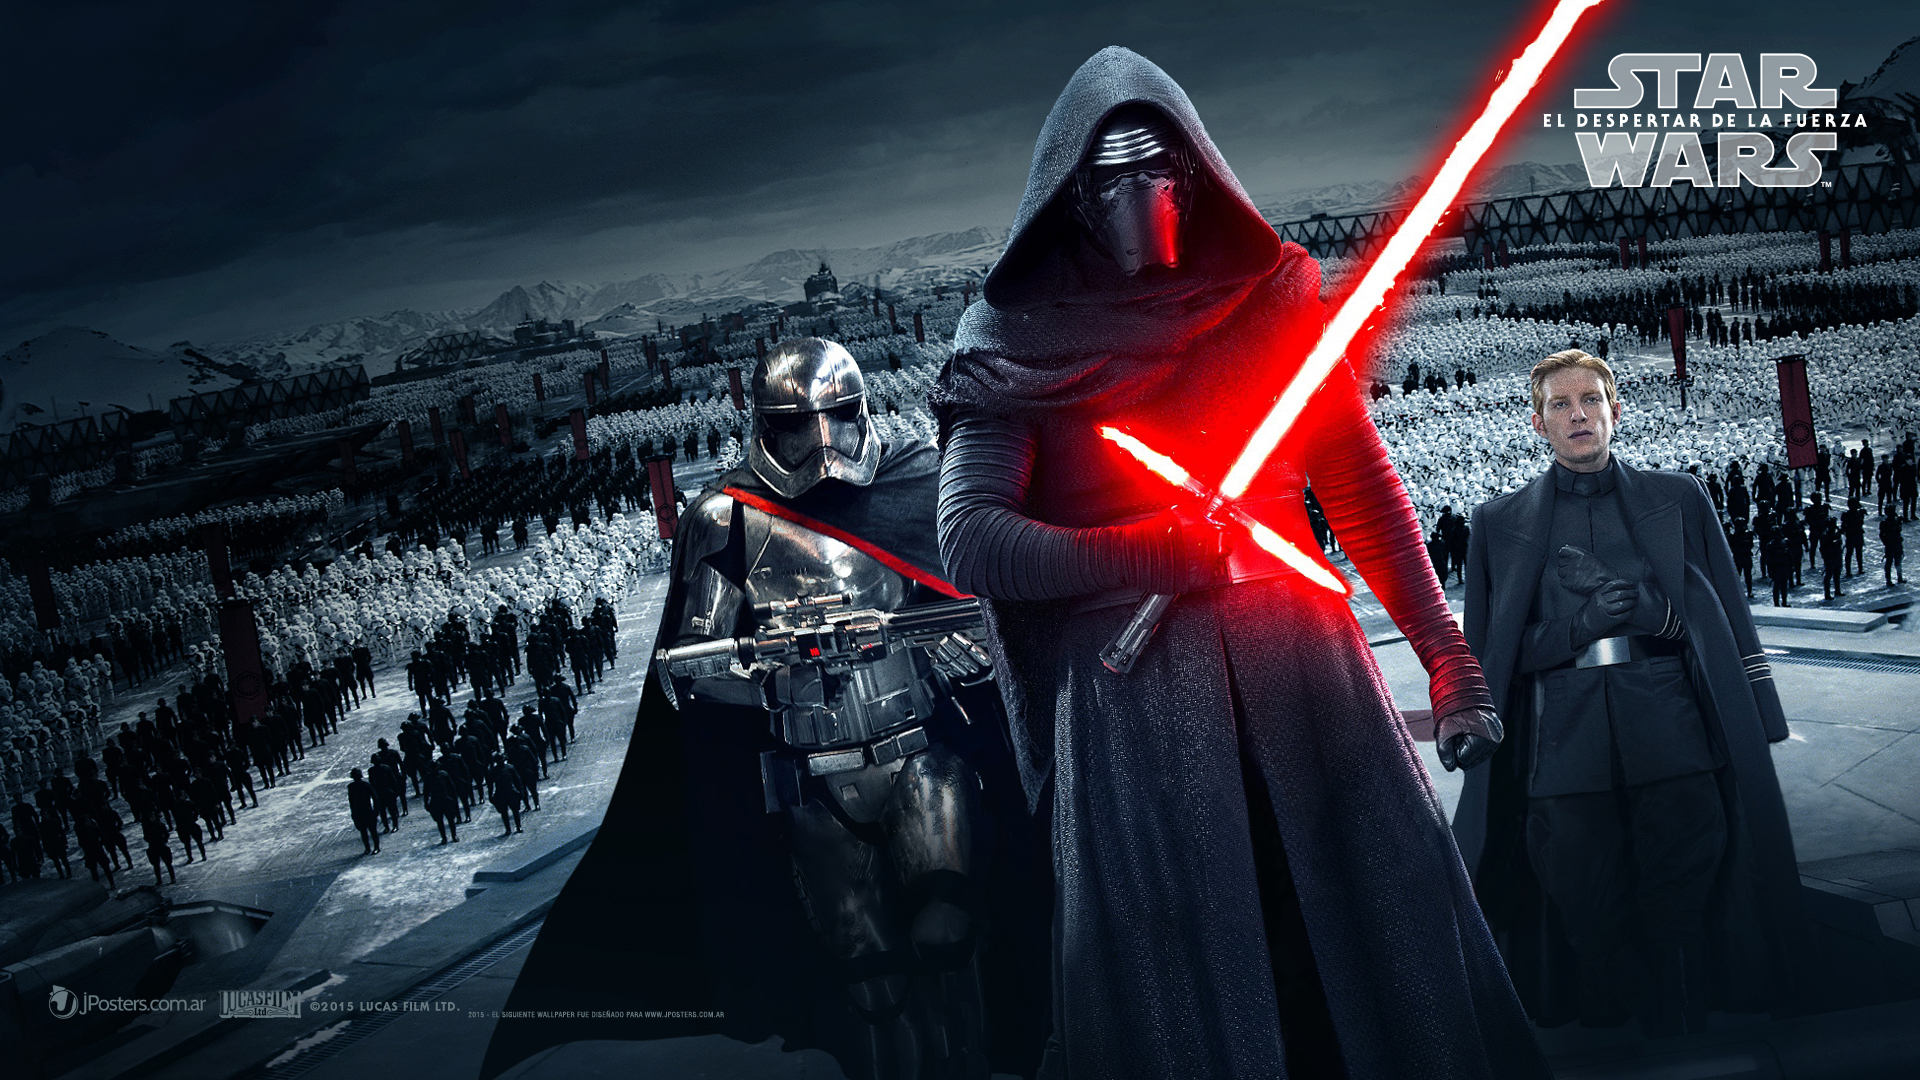 star-wars-force-awakens-banner-full-1